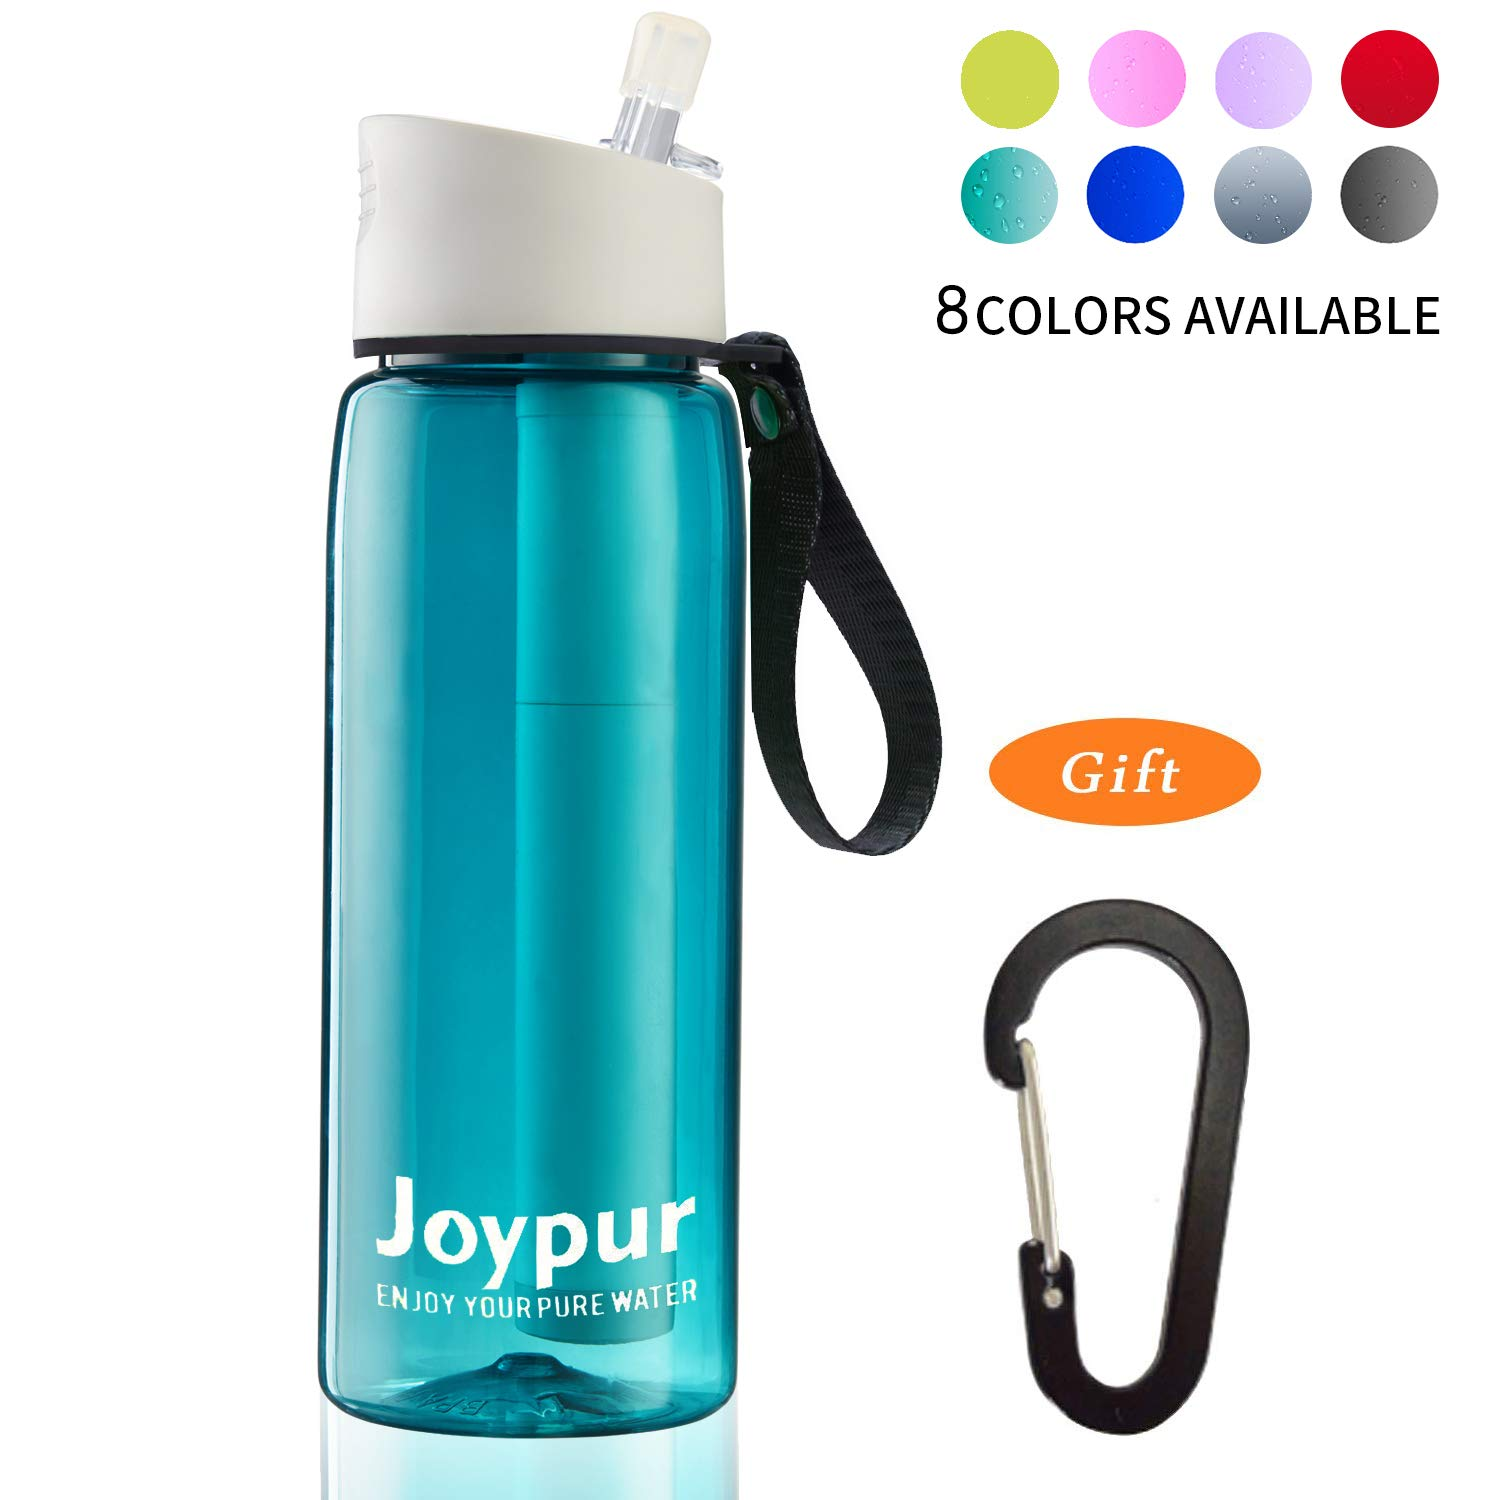 joypur Portable Filtered Water Bottle - Emergency Water Purifier Bottle for Tap Water, 4-Stage Integrated Filter Water Bottle Straw for Camping Hiking Backpacking